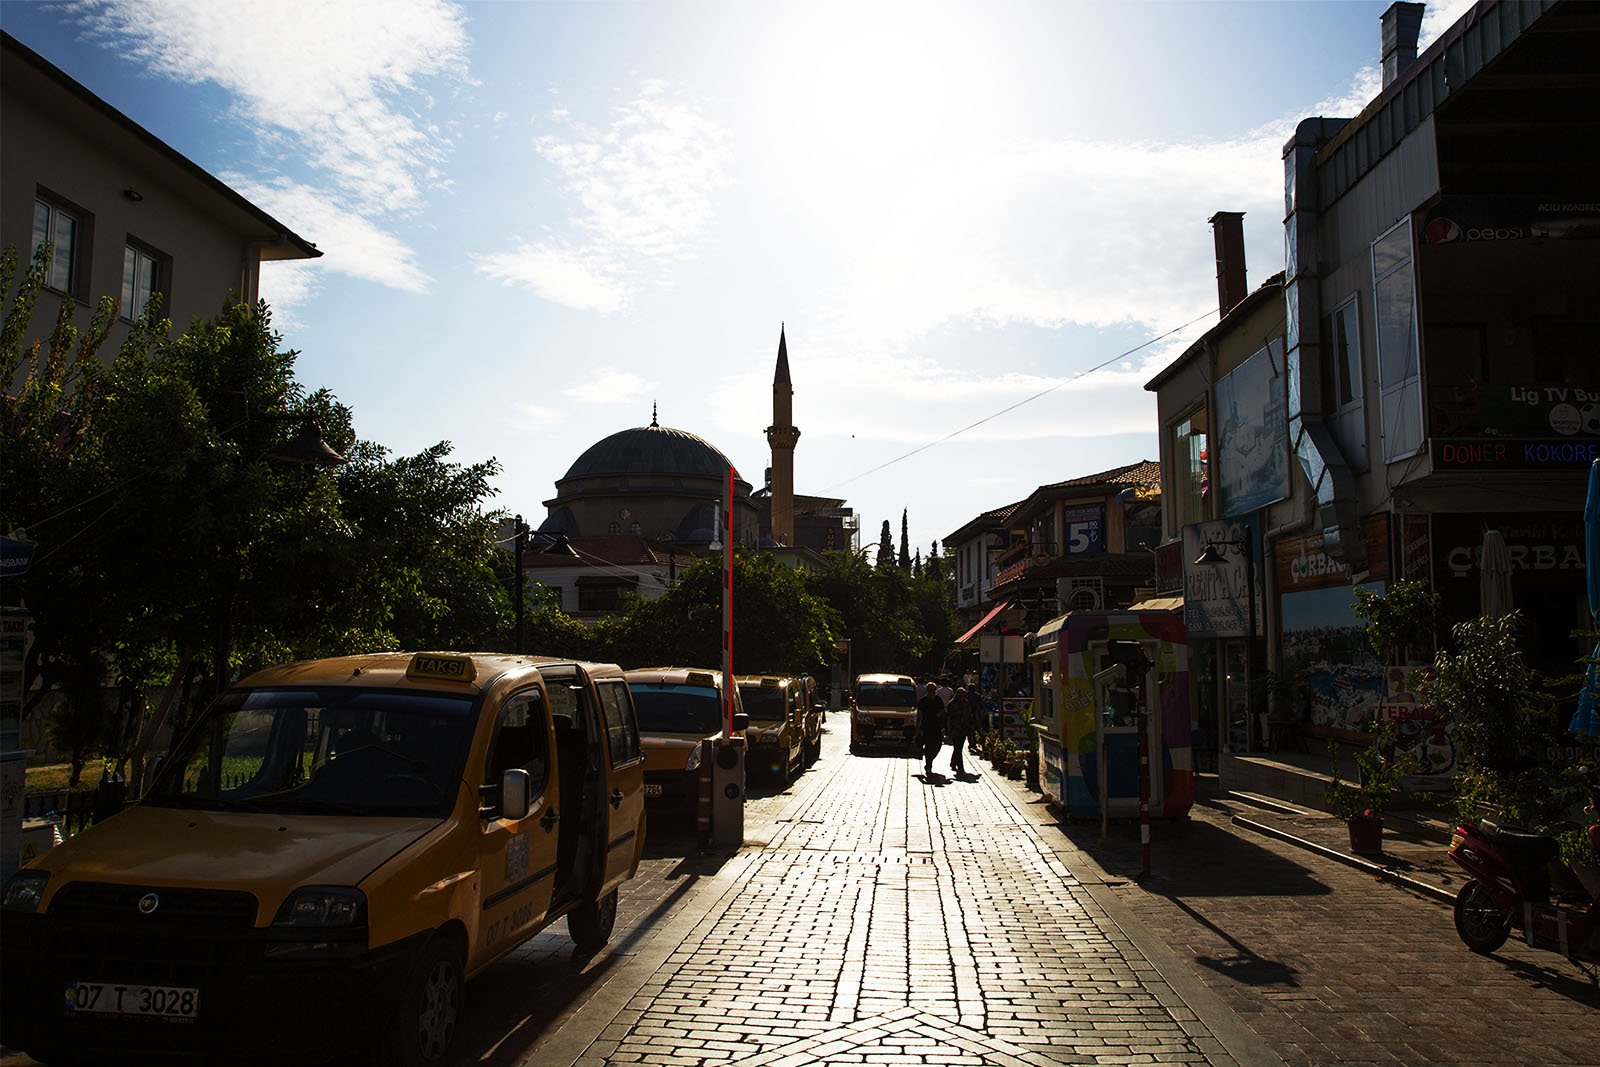 How to walk through the Kaleiçi district in Antalya